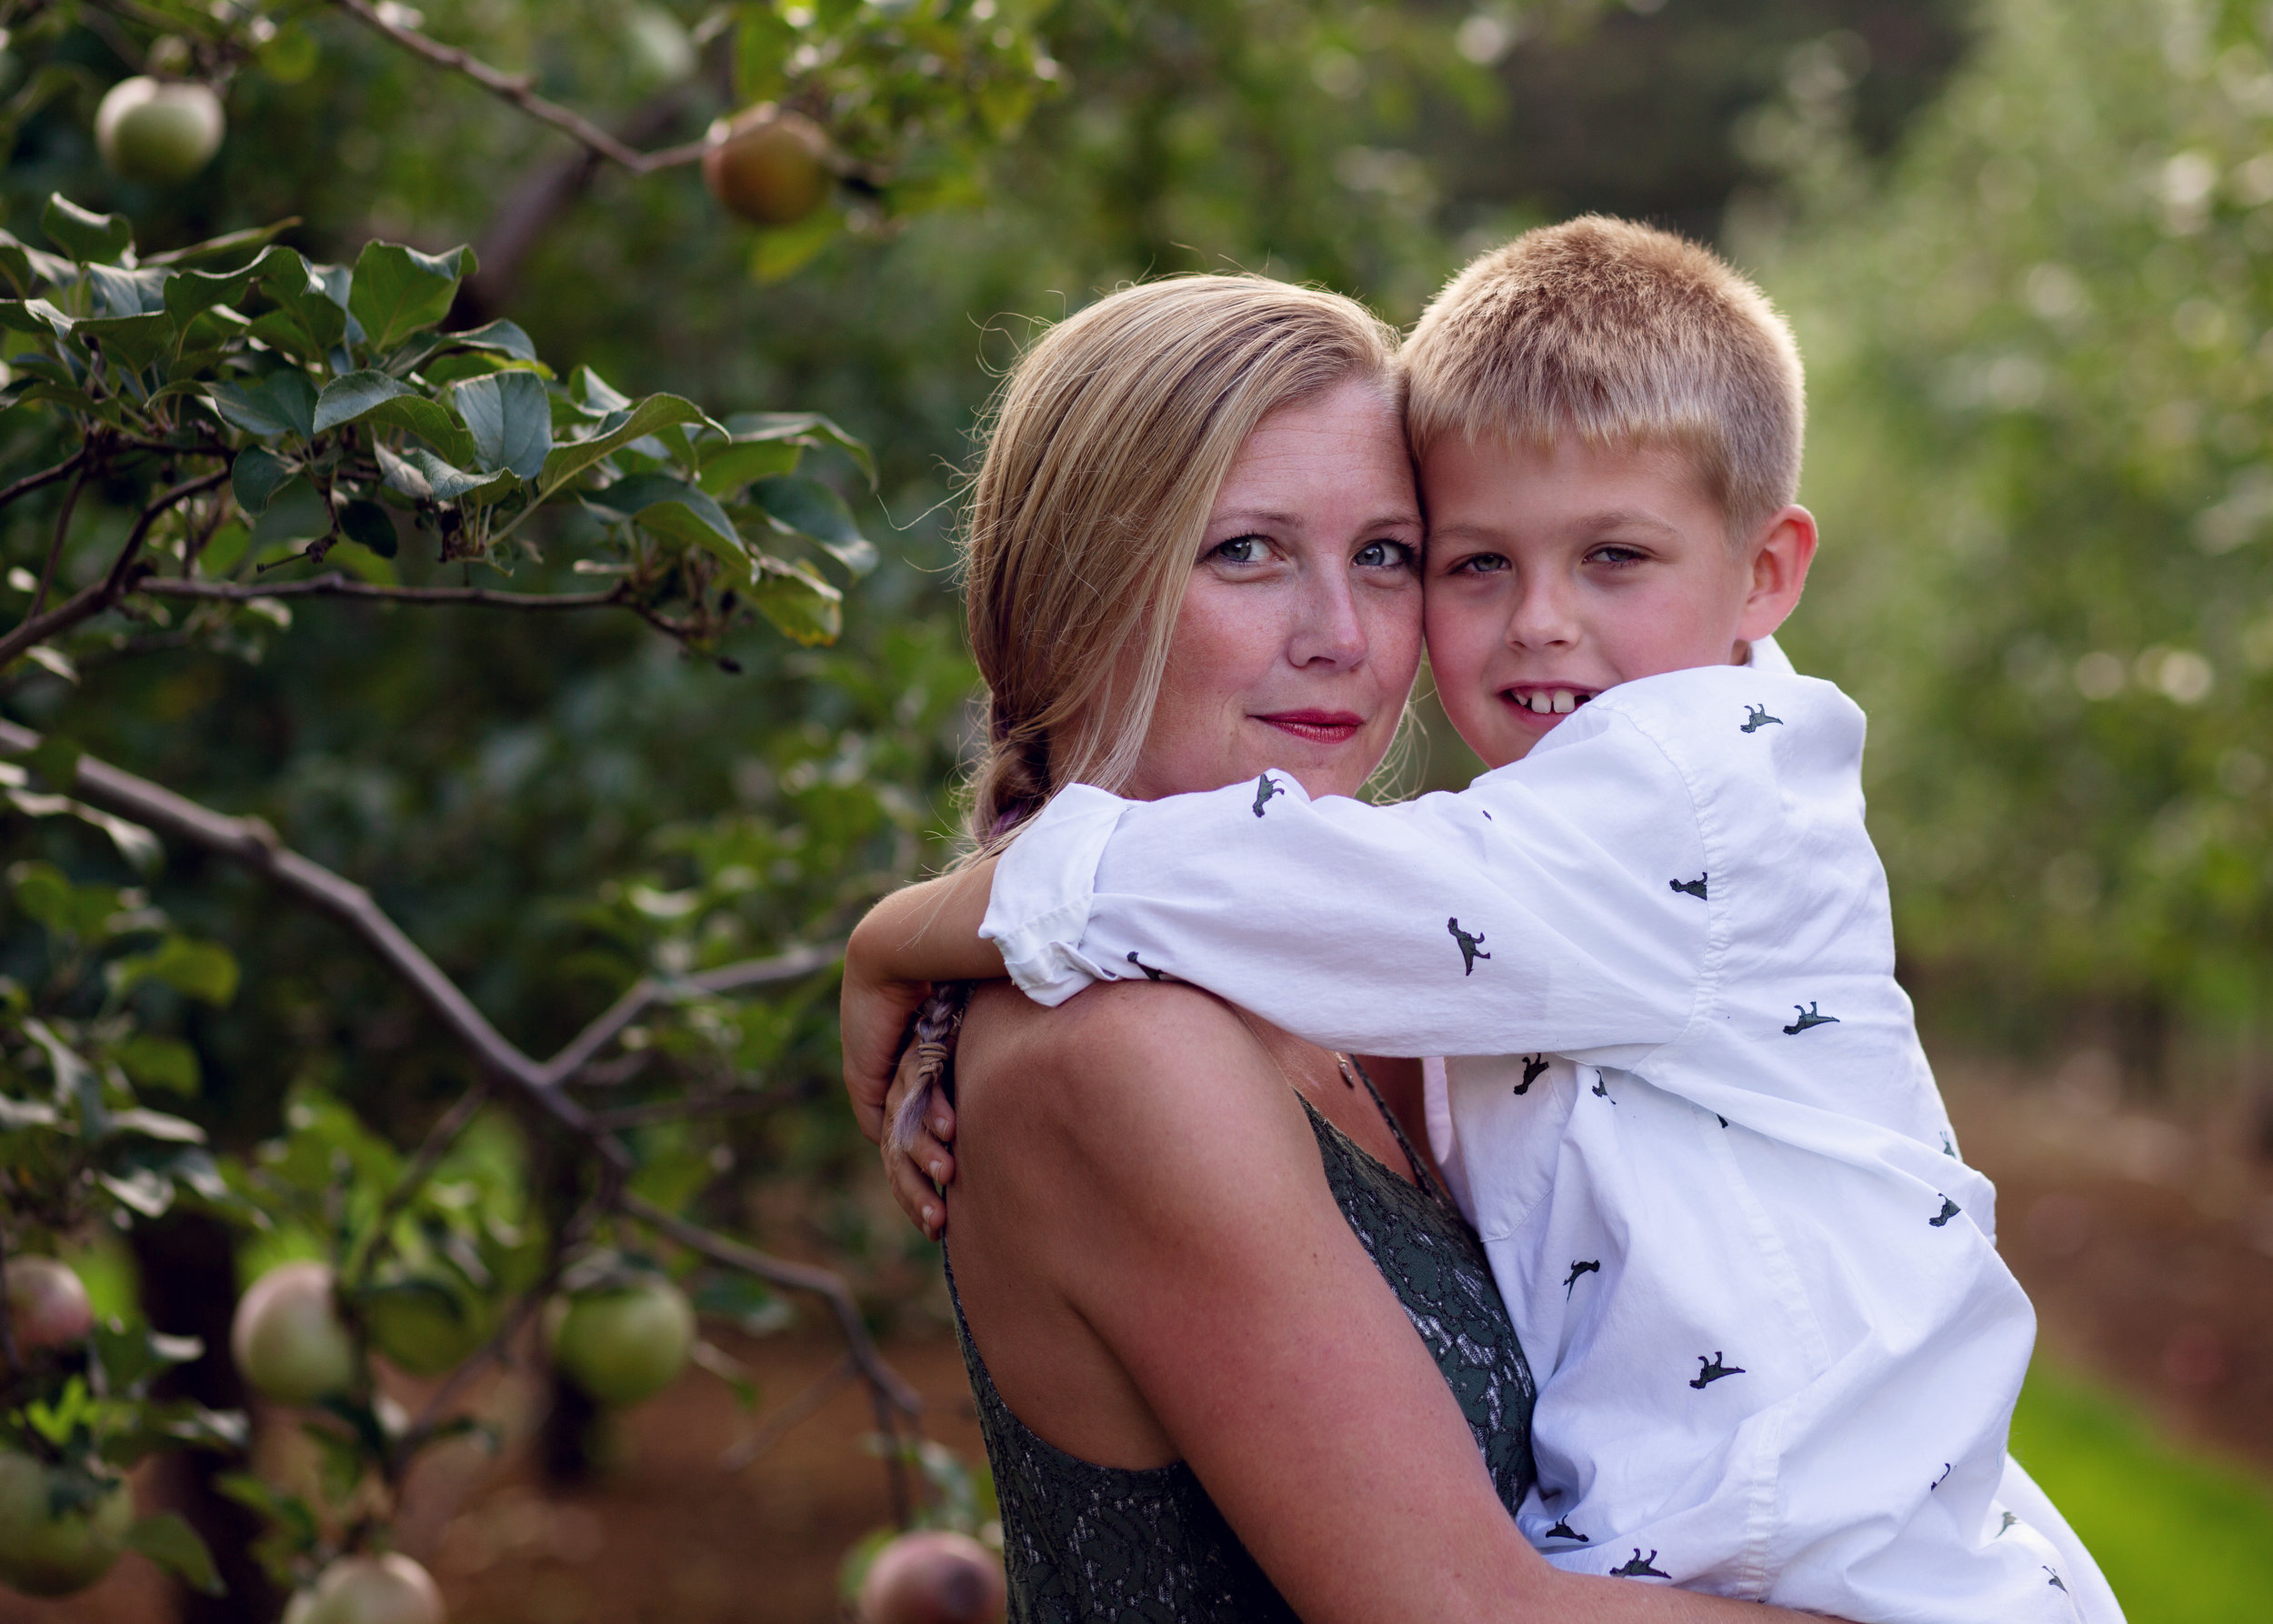 Mom and son | Kelly Rhoades Photography